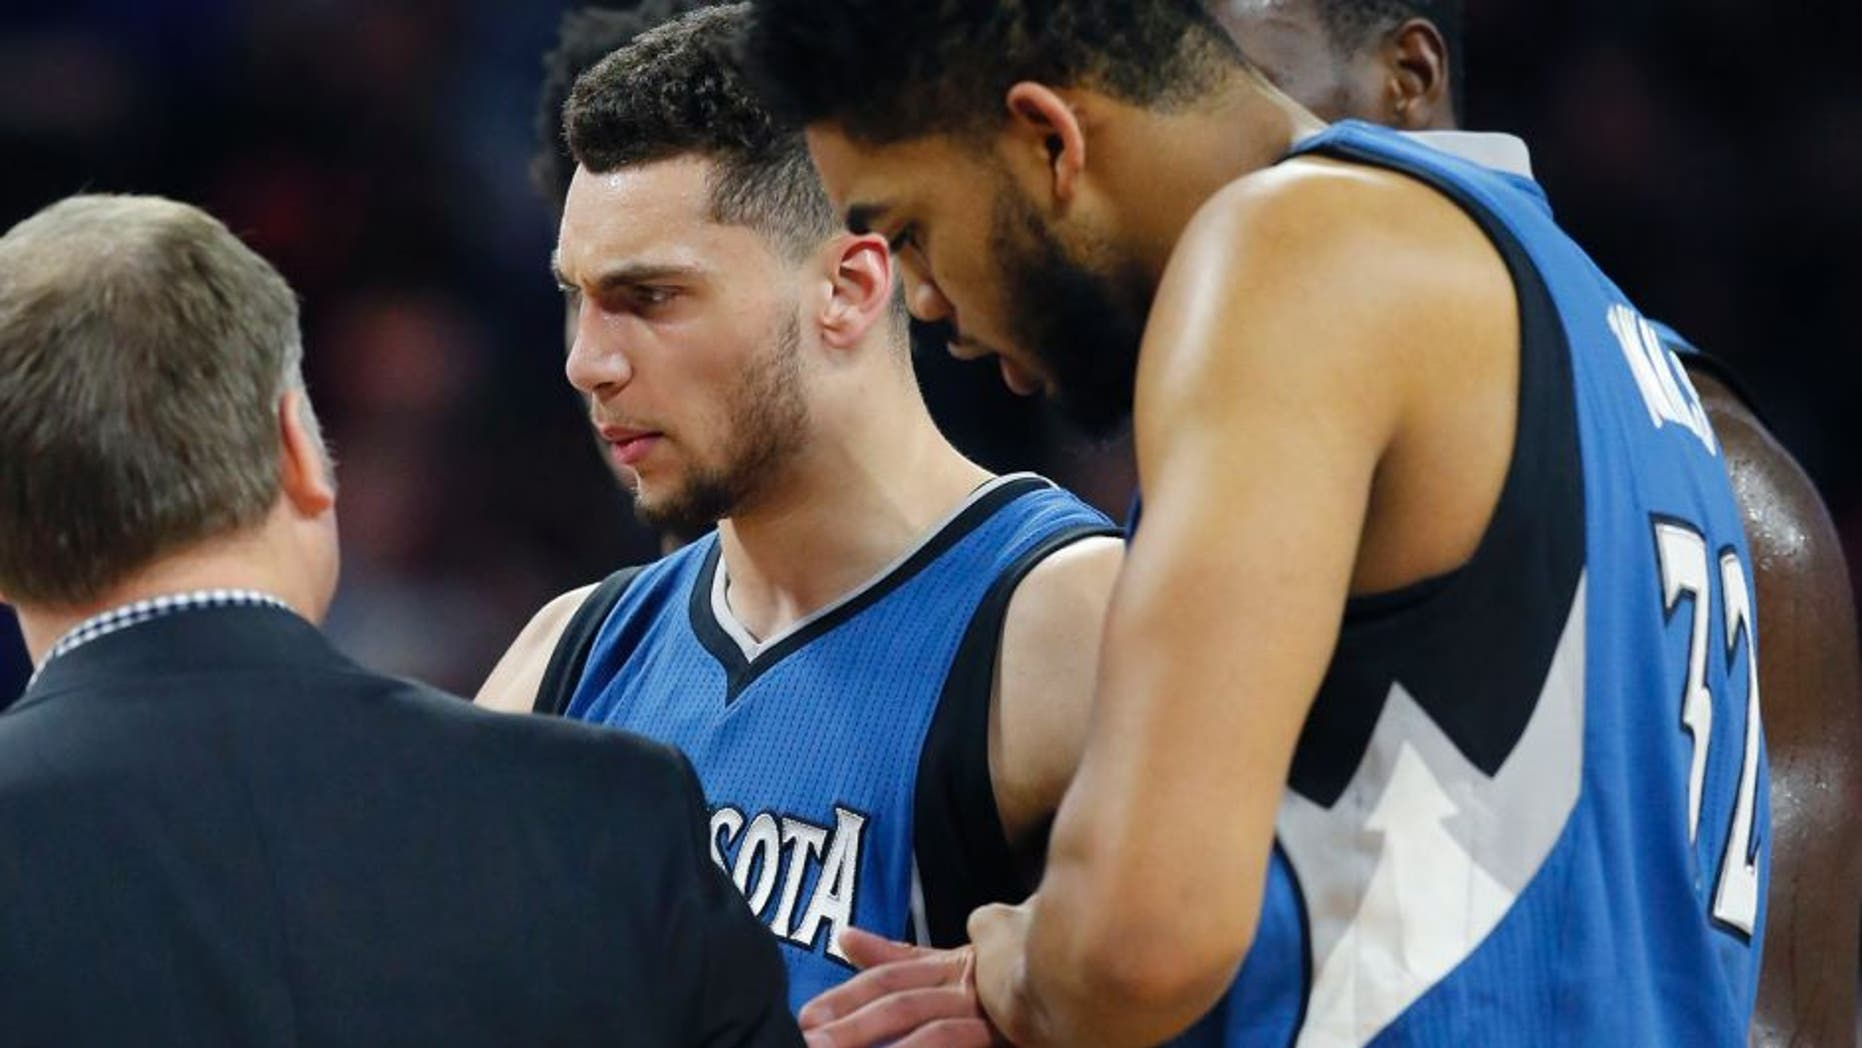 Minnesota Timberwolves guard Zach LaVine is helped off the court during the second half of the team's NBA basketball game against the Detroit Pistons, Friday, Feb. 3, 2017, in Auburn Hills, Mich. (AP Photo/Carlos Osorio)